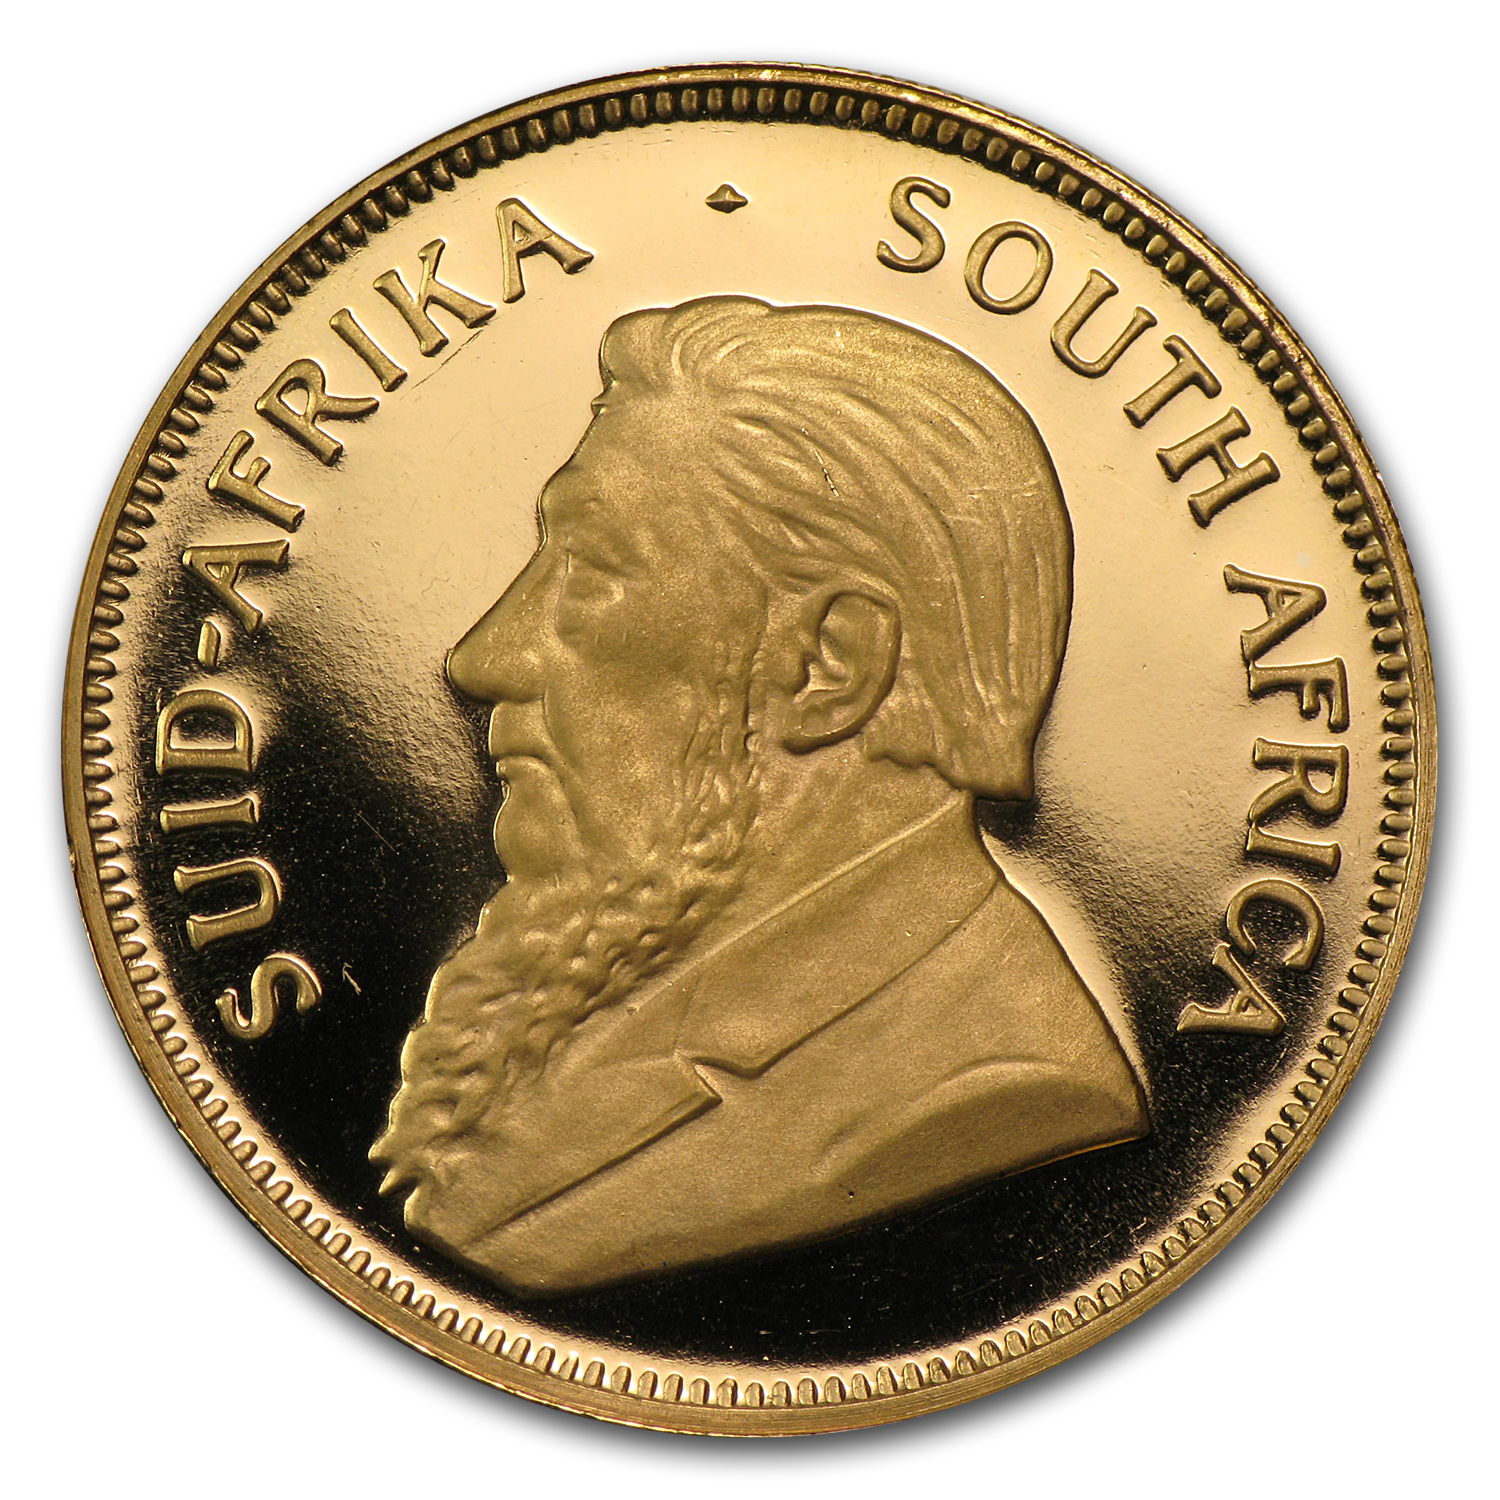 1985 1/2 oz Gold South African Krugerrand (Proof)